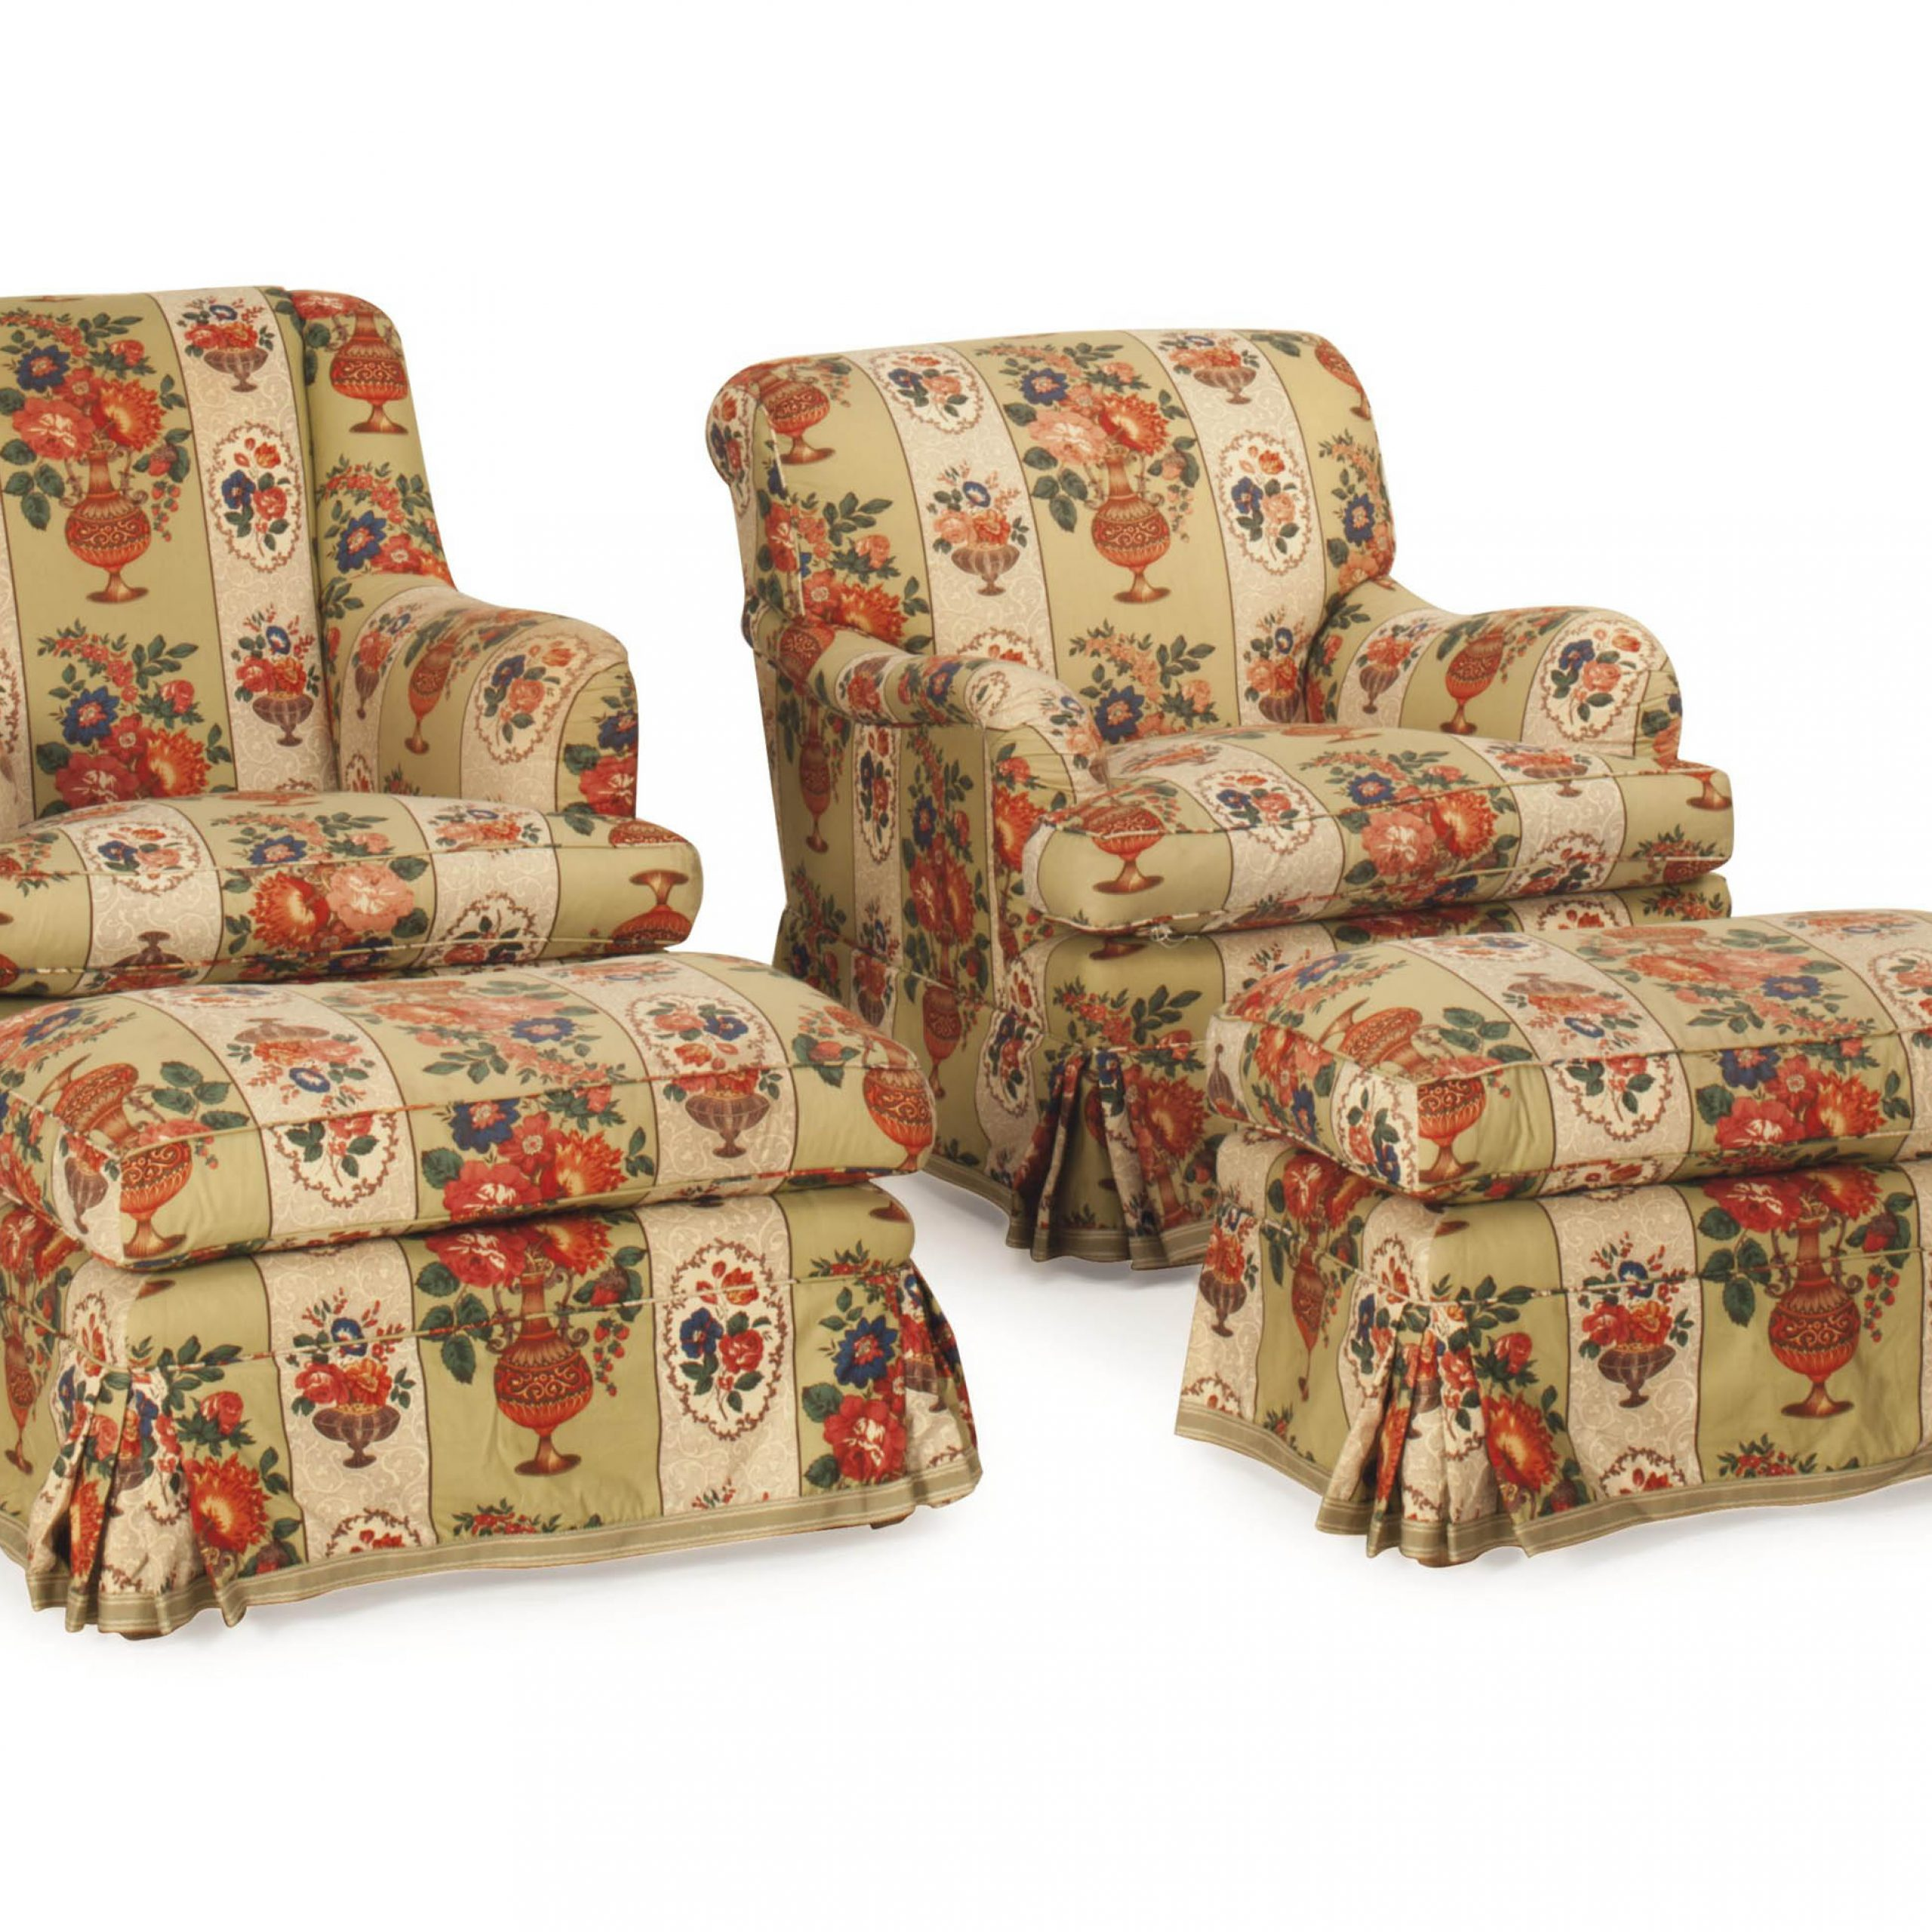 Two Pairs Of Floral Chintz Upholstered Club Chairs And A Throughout Chintz Sofas And Chairs (View 7 of 15)